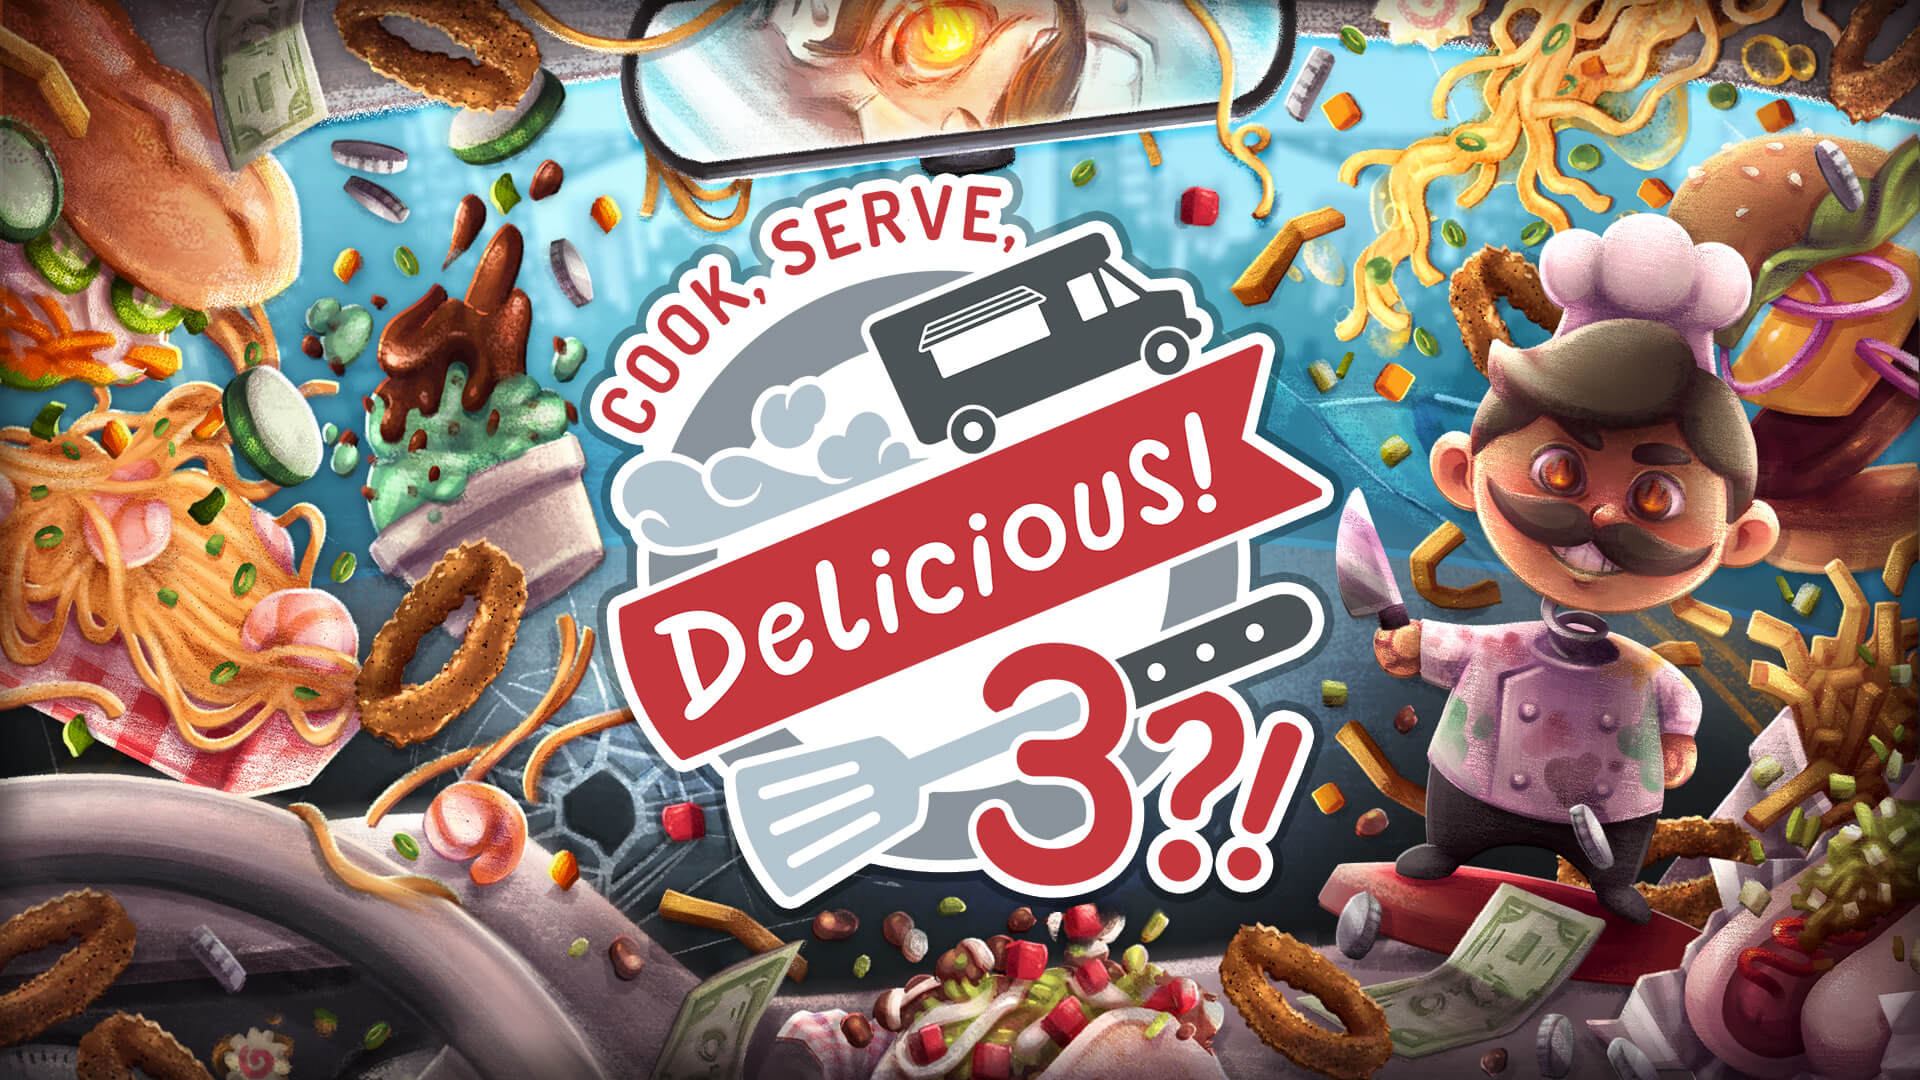 Cook, Serve, Delicious! 3?! Review: Cooking Across America